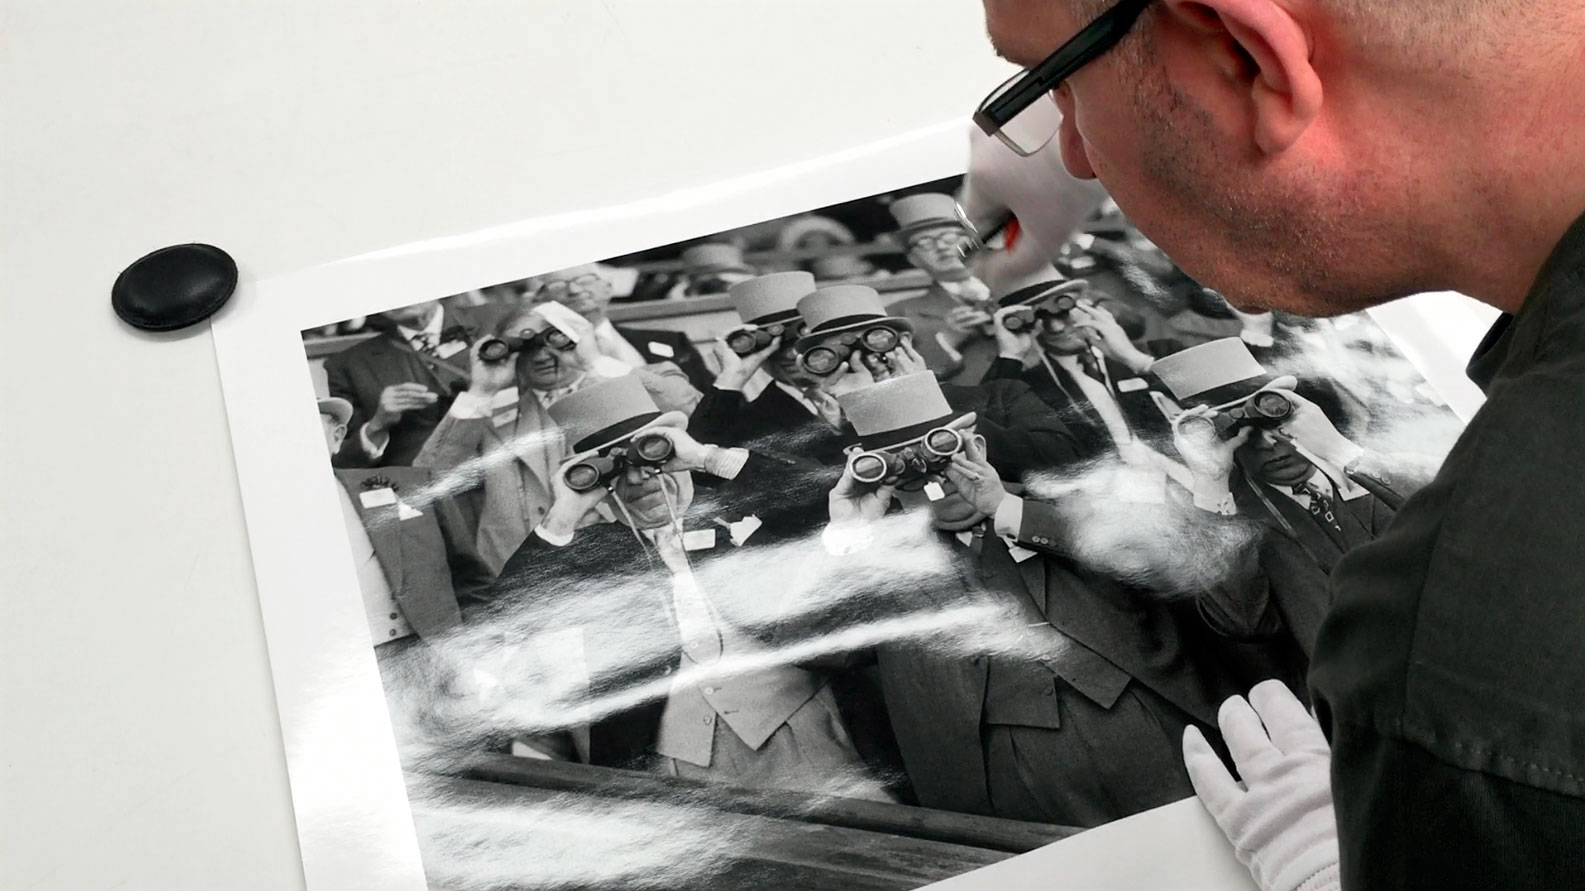 metro imaging prepparing a black and white print of upper glasses for btitish photographer arthur steel